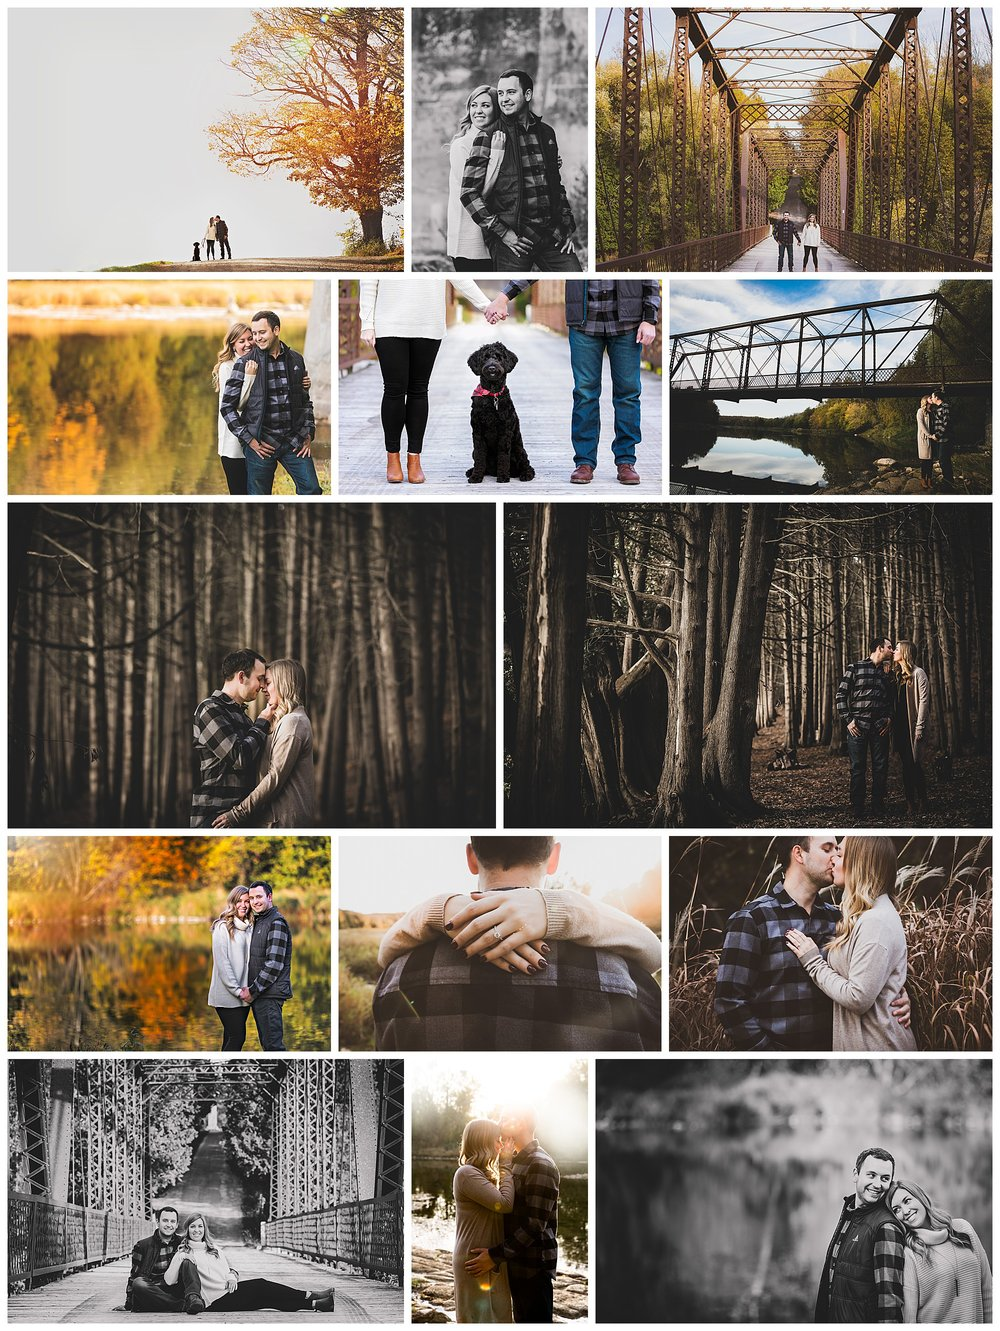 Goderich, Ontario engagement photography by VanDaele & Russell